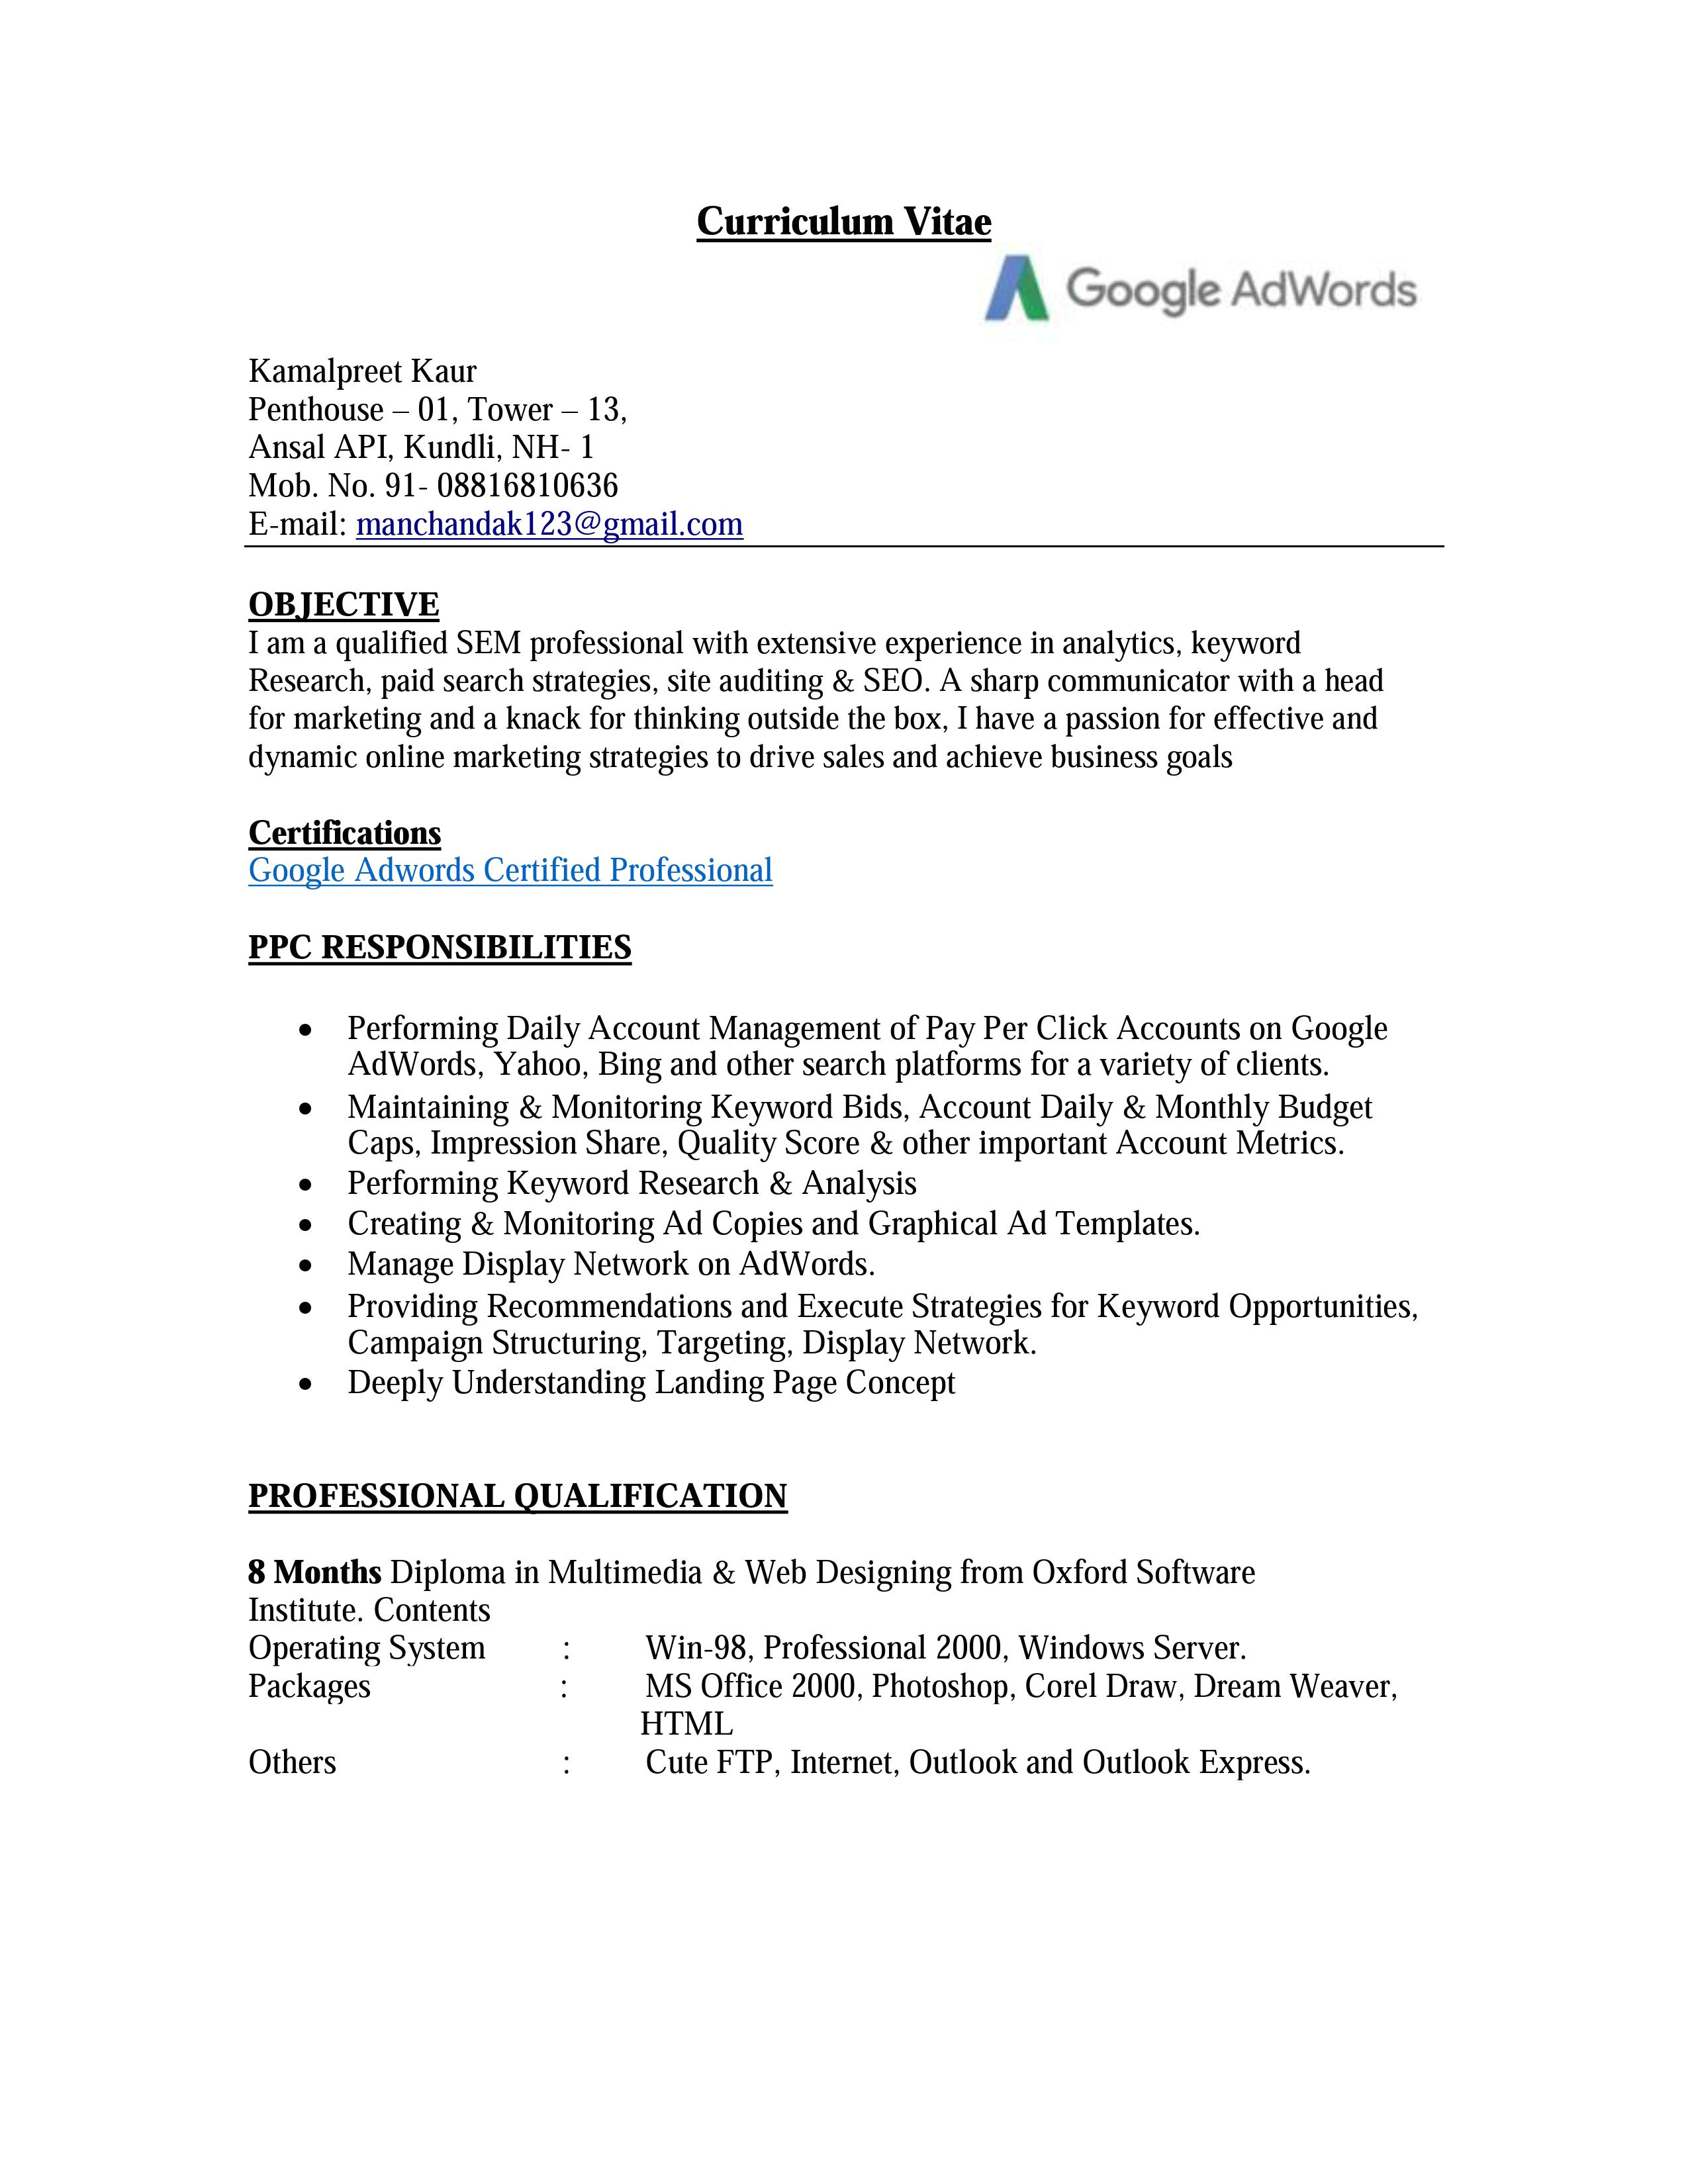 Ppc Resume Sample Know the Essentials Of A Ppc Resume for Job Opportunity